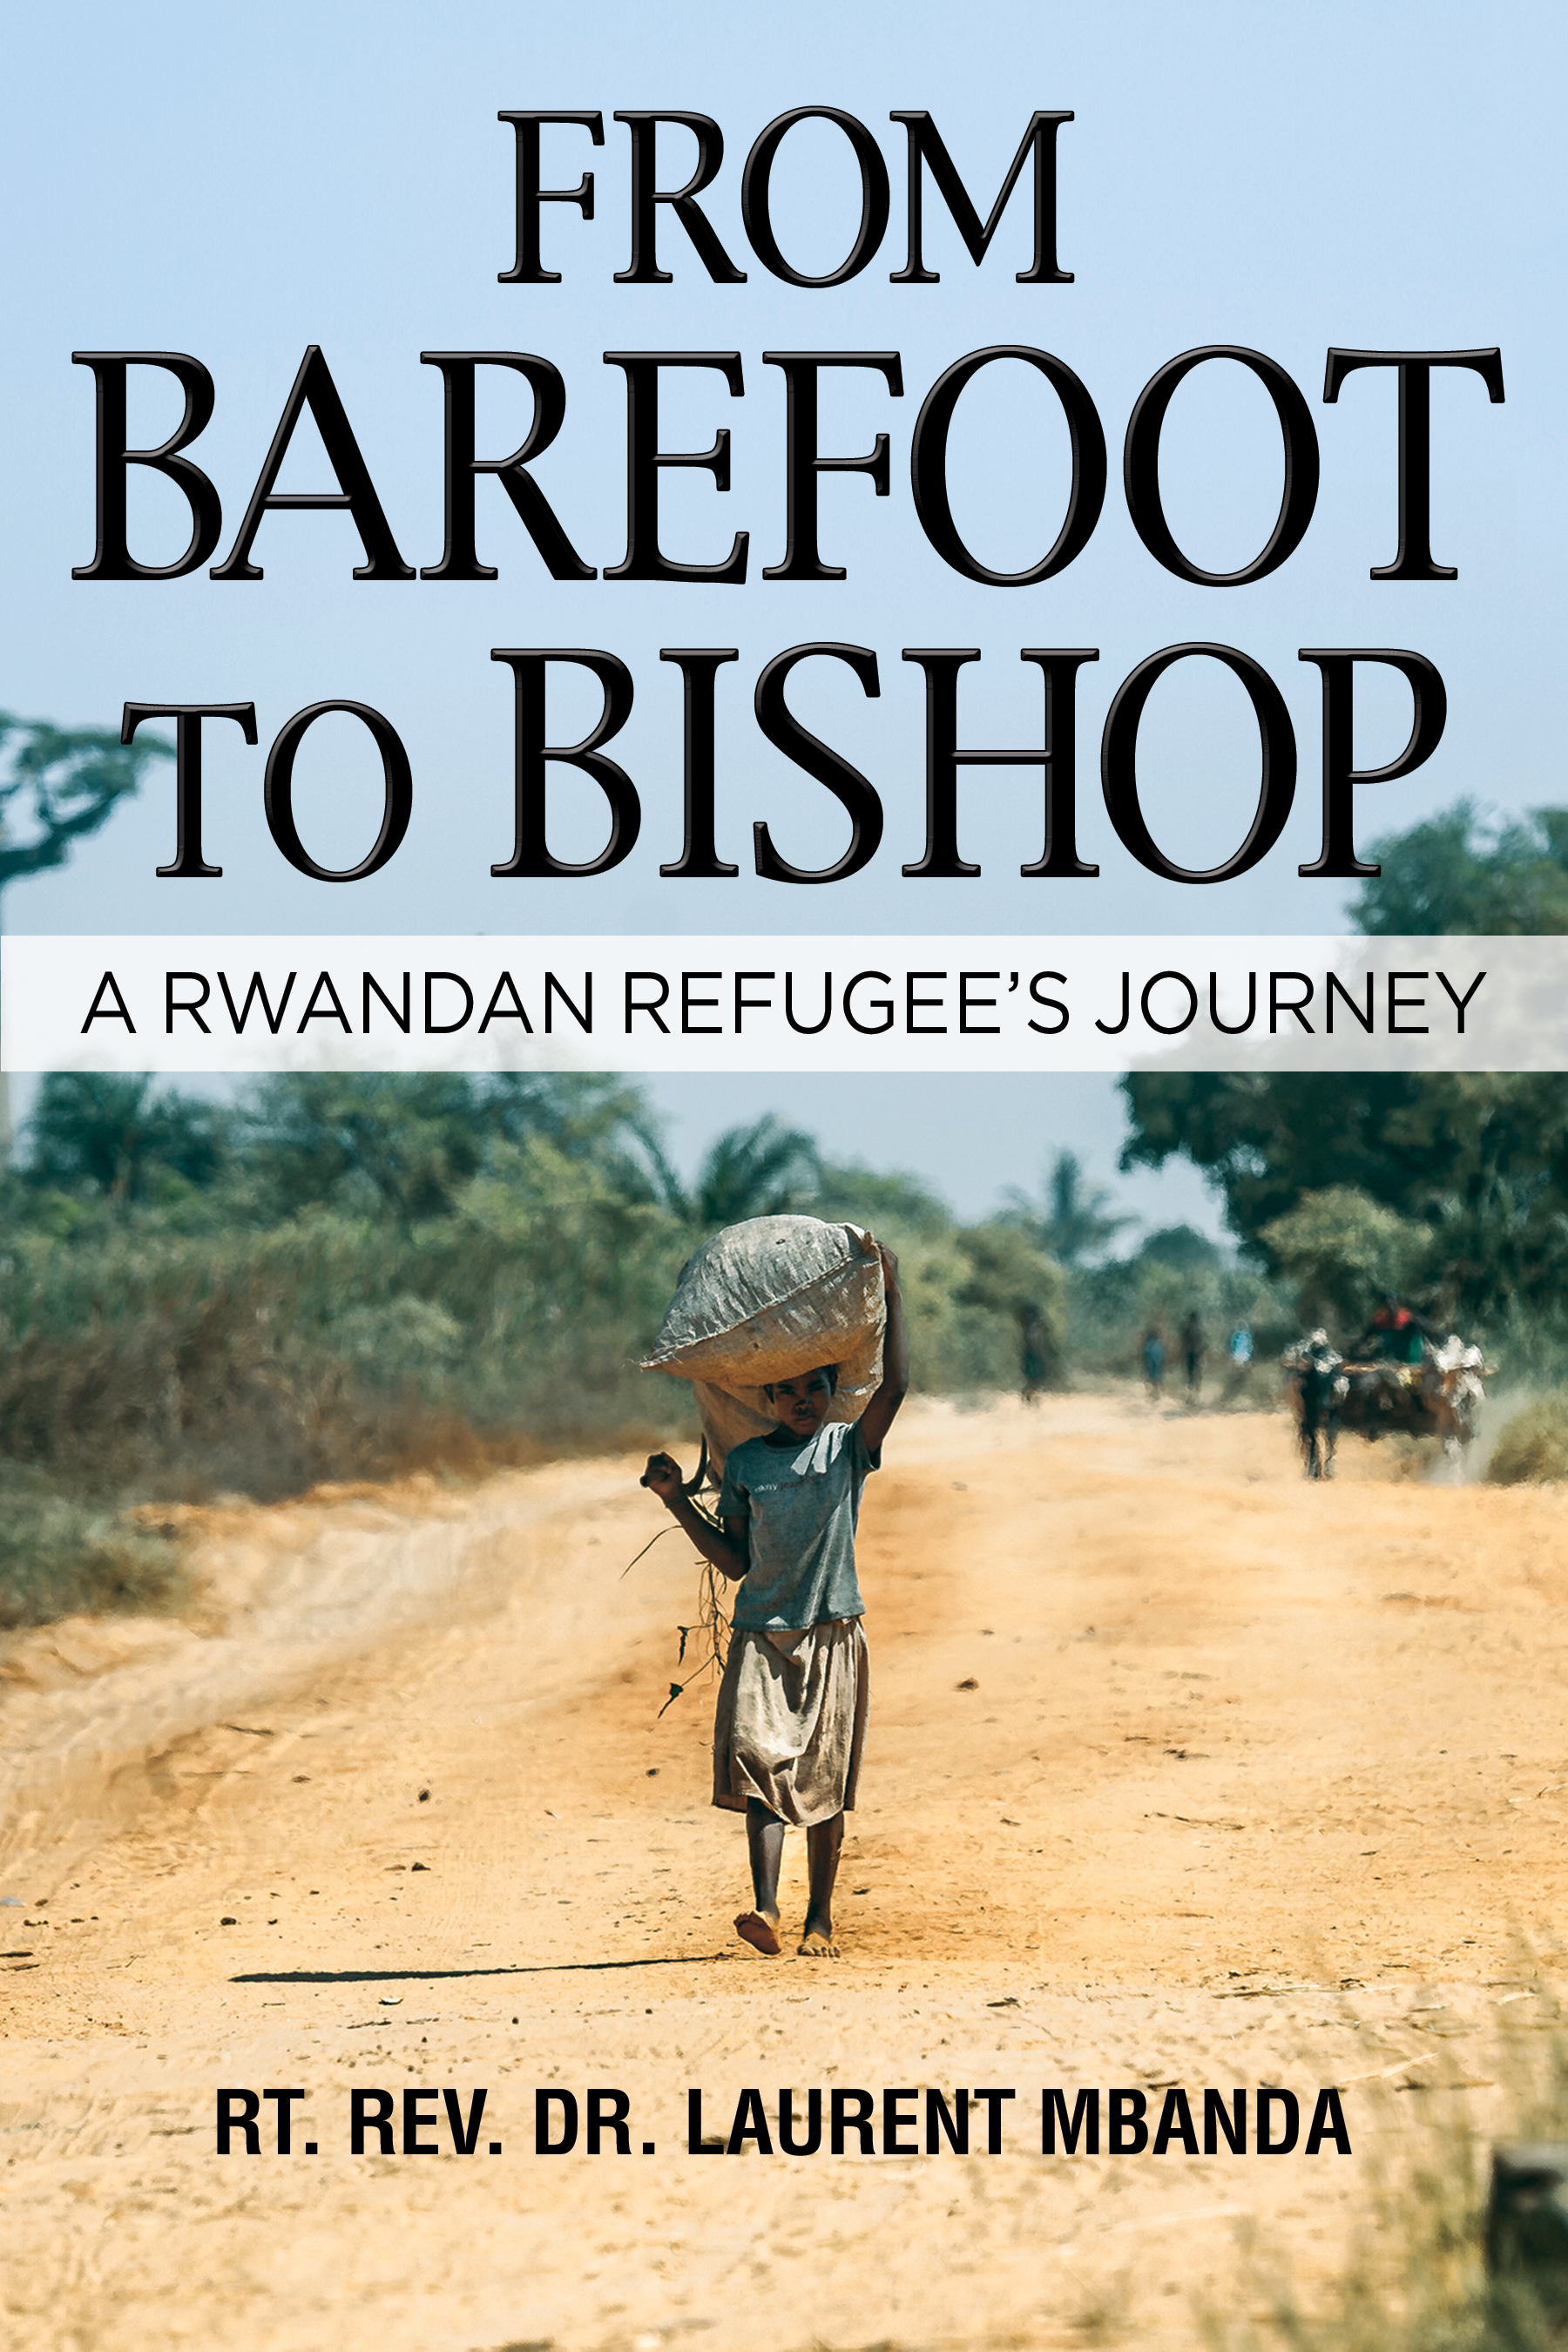 From Barefoot To Bishop A Rwandan Refugee Journey.jpg